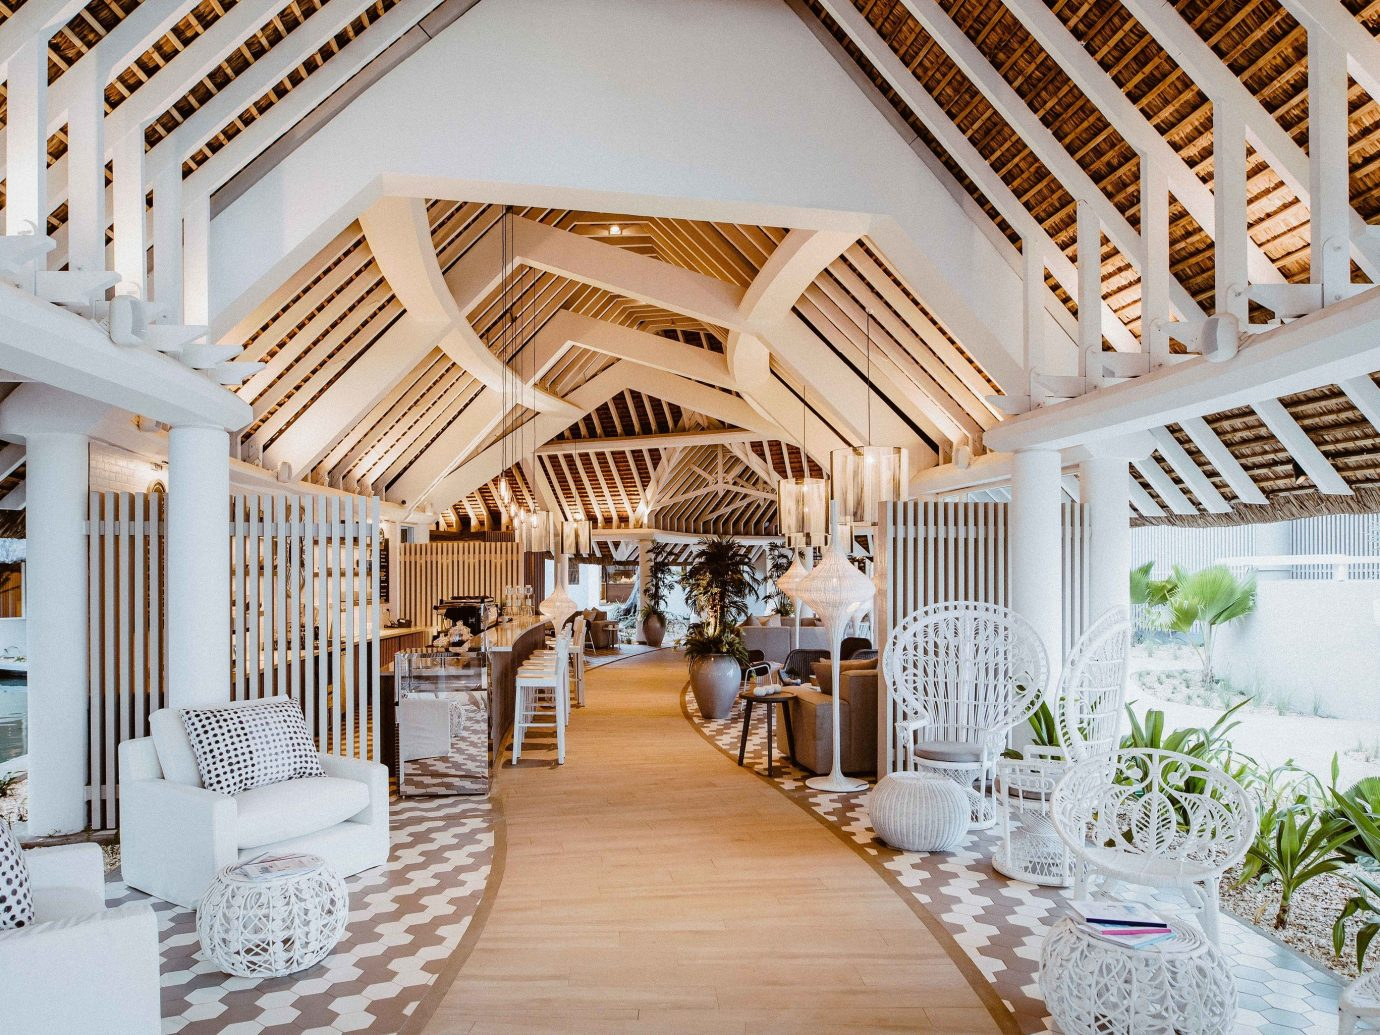 chair indoor building floor room Living interior design ceiling estate home furniture Lobby wood Dining real estate daylighting porch